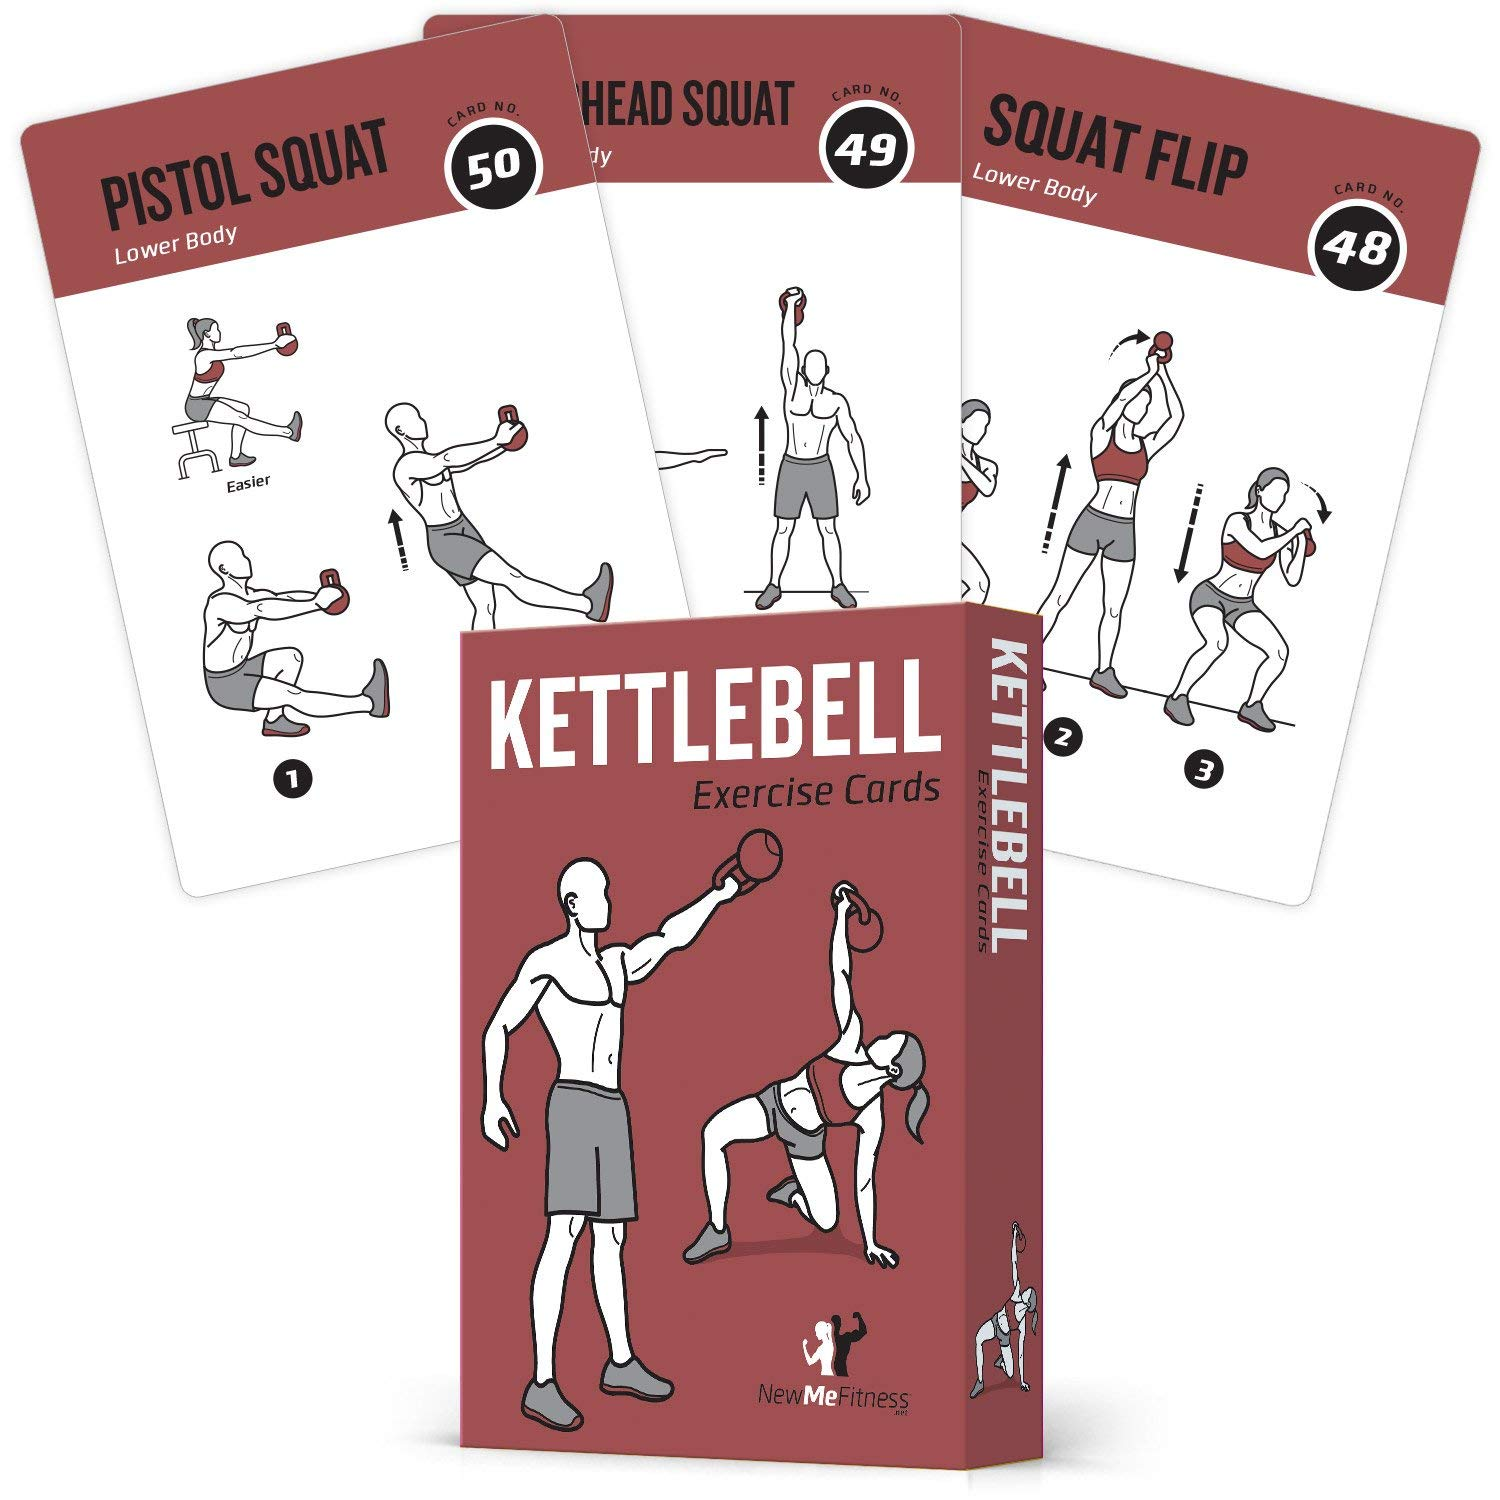 Exercise Cards Kettlebell Home Gym Workouts HIIT Strength Training Build Muscle Total Body Fitness Guide Training Routines Bodybuilding Personal Learn KB Moves 3.5''x5'' Cards Burn Fat by NewMe Fitness